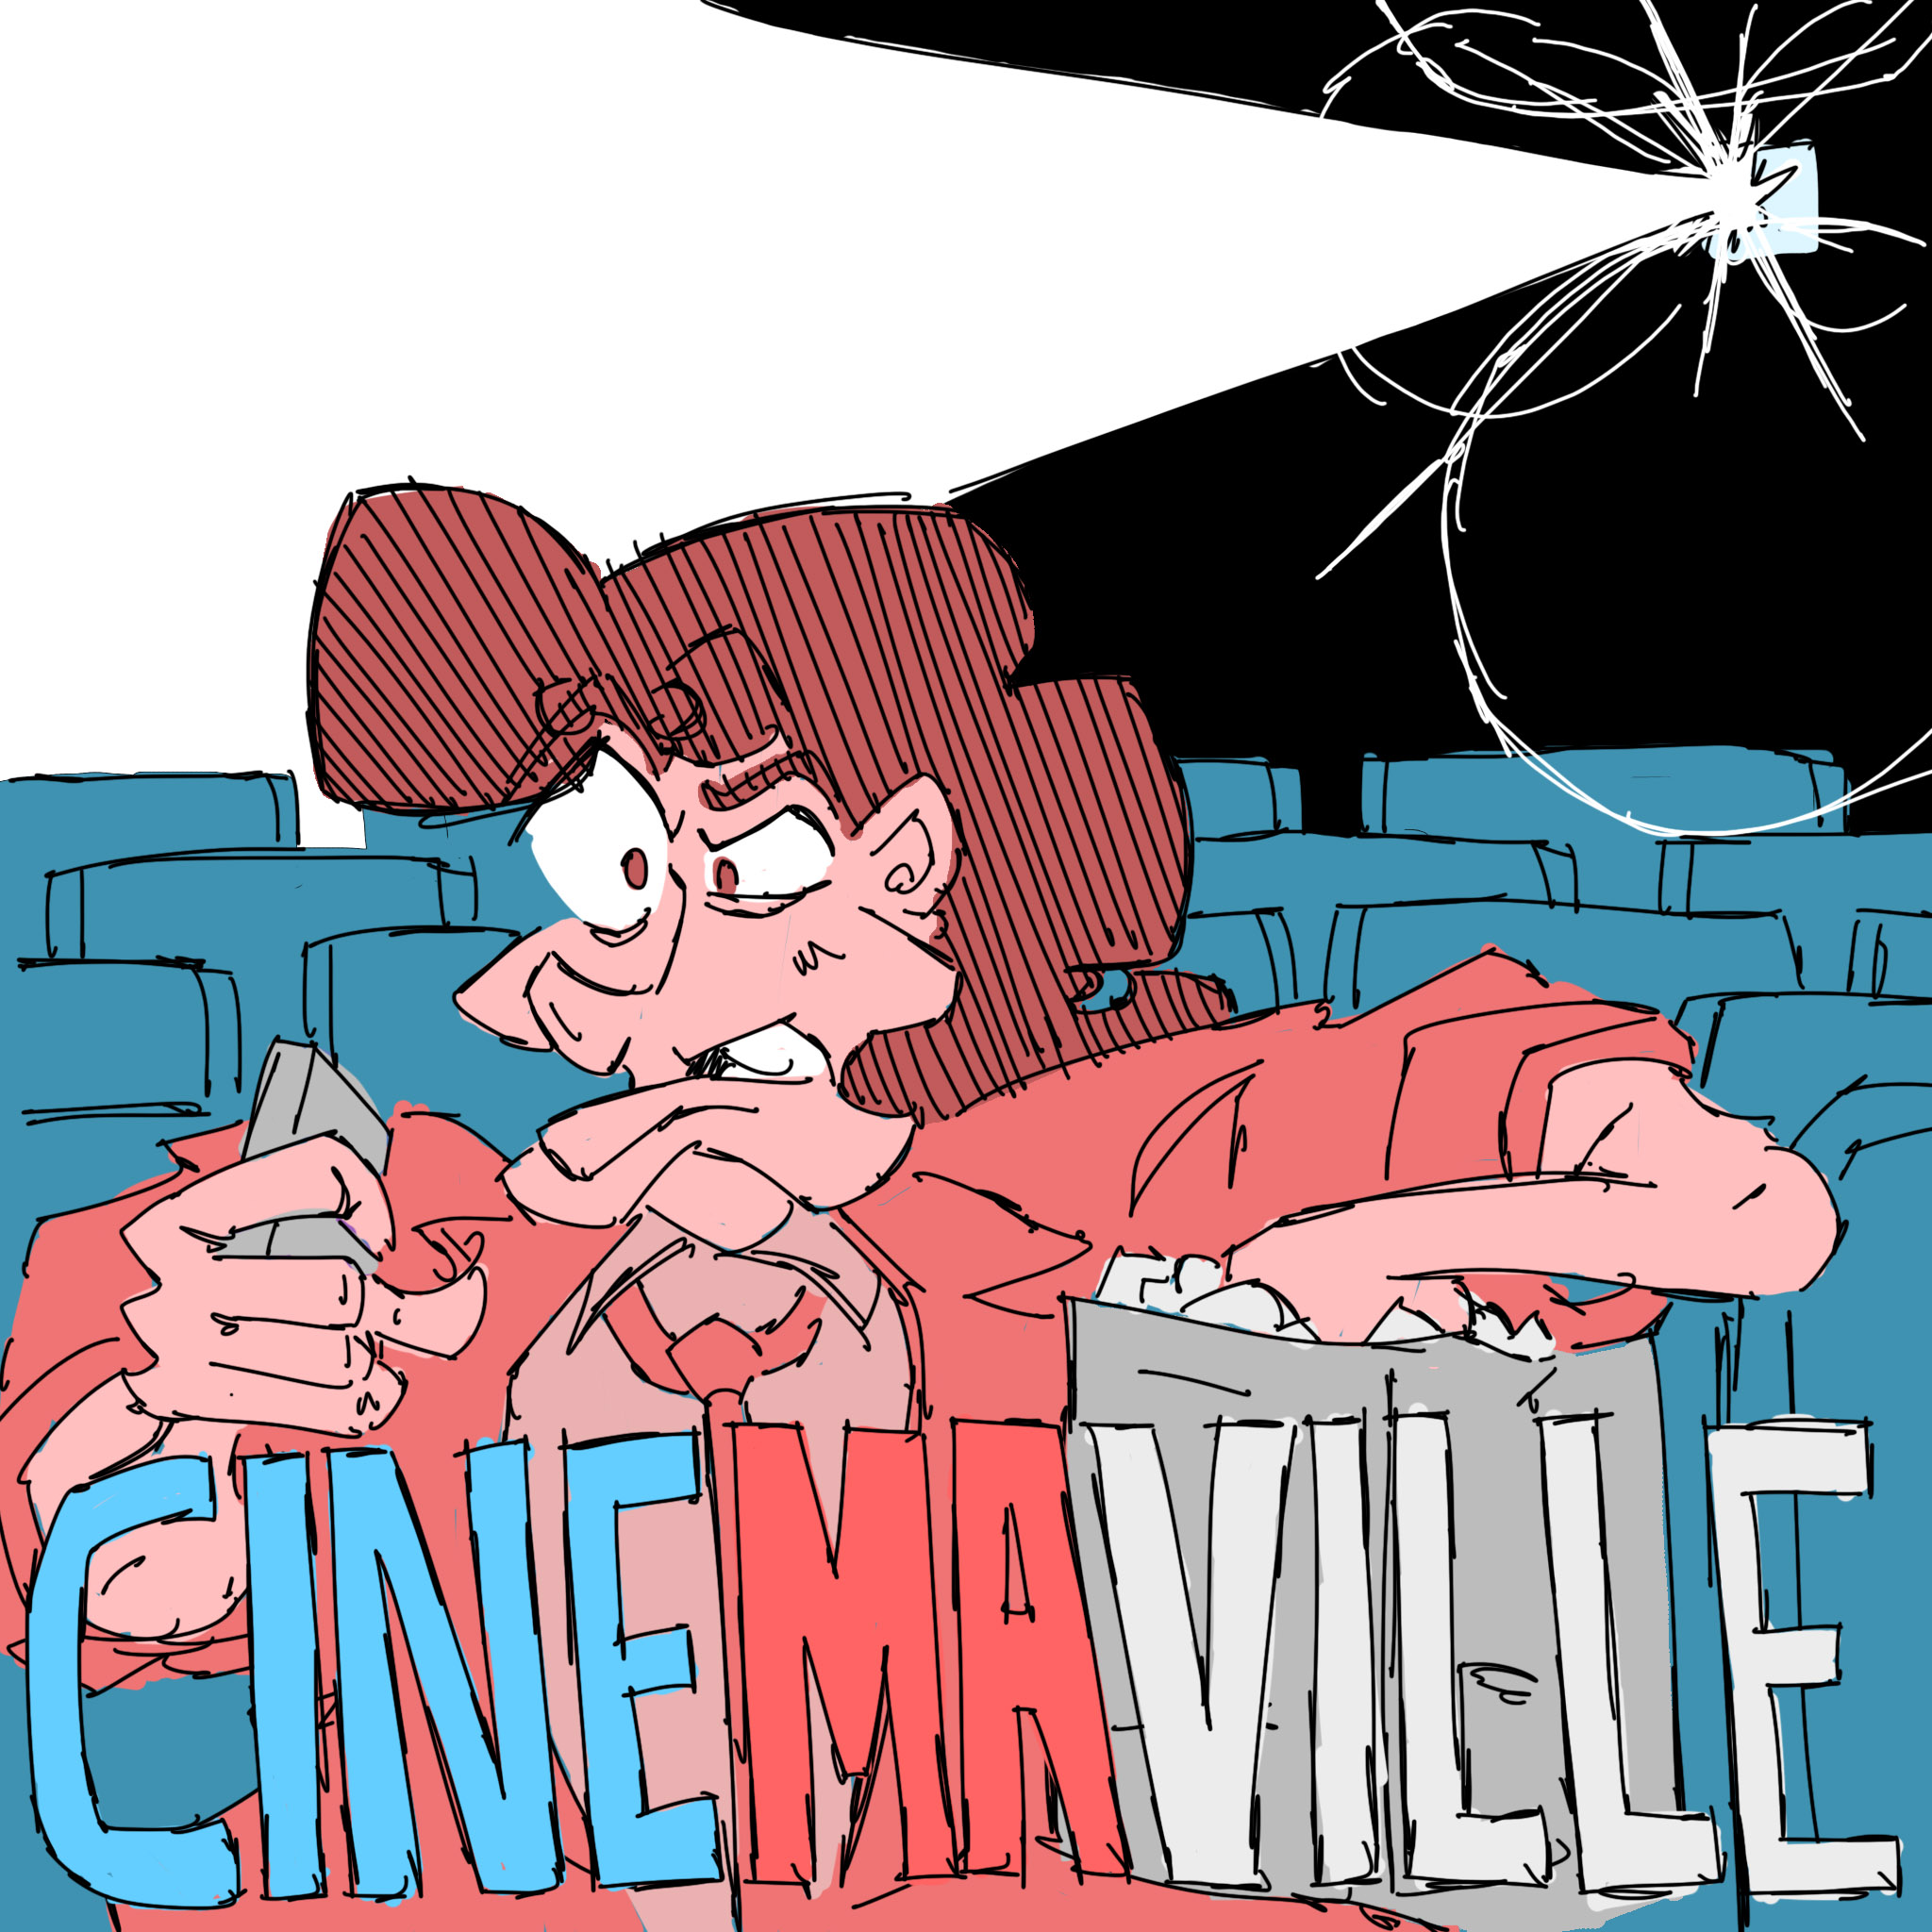 CinemaVille 9: Star Wars, Toni Erdmann and The Death of Cinema: 2016 Edition